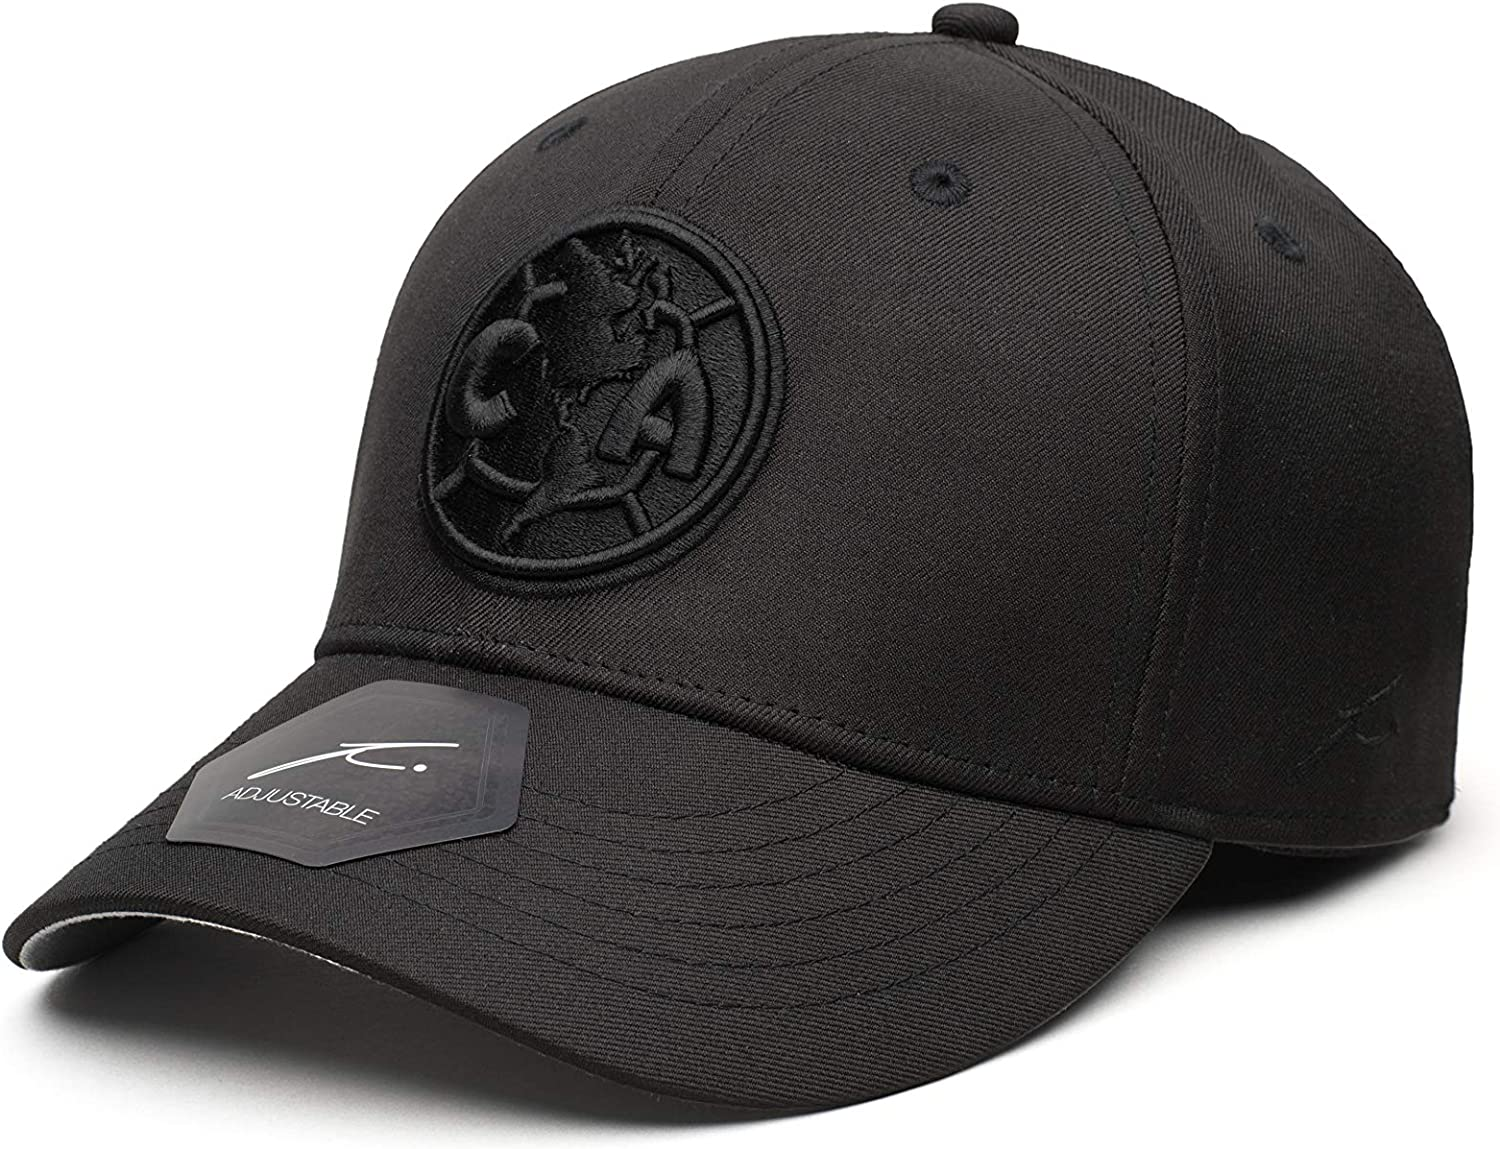 Fi Collection Club America Soccer Dusk Adjustable Hat//Cap Black